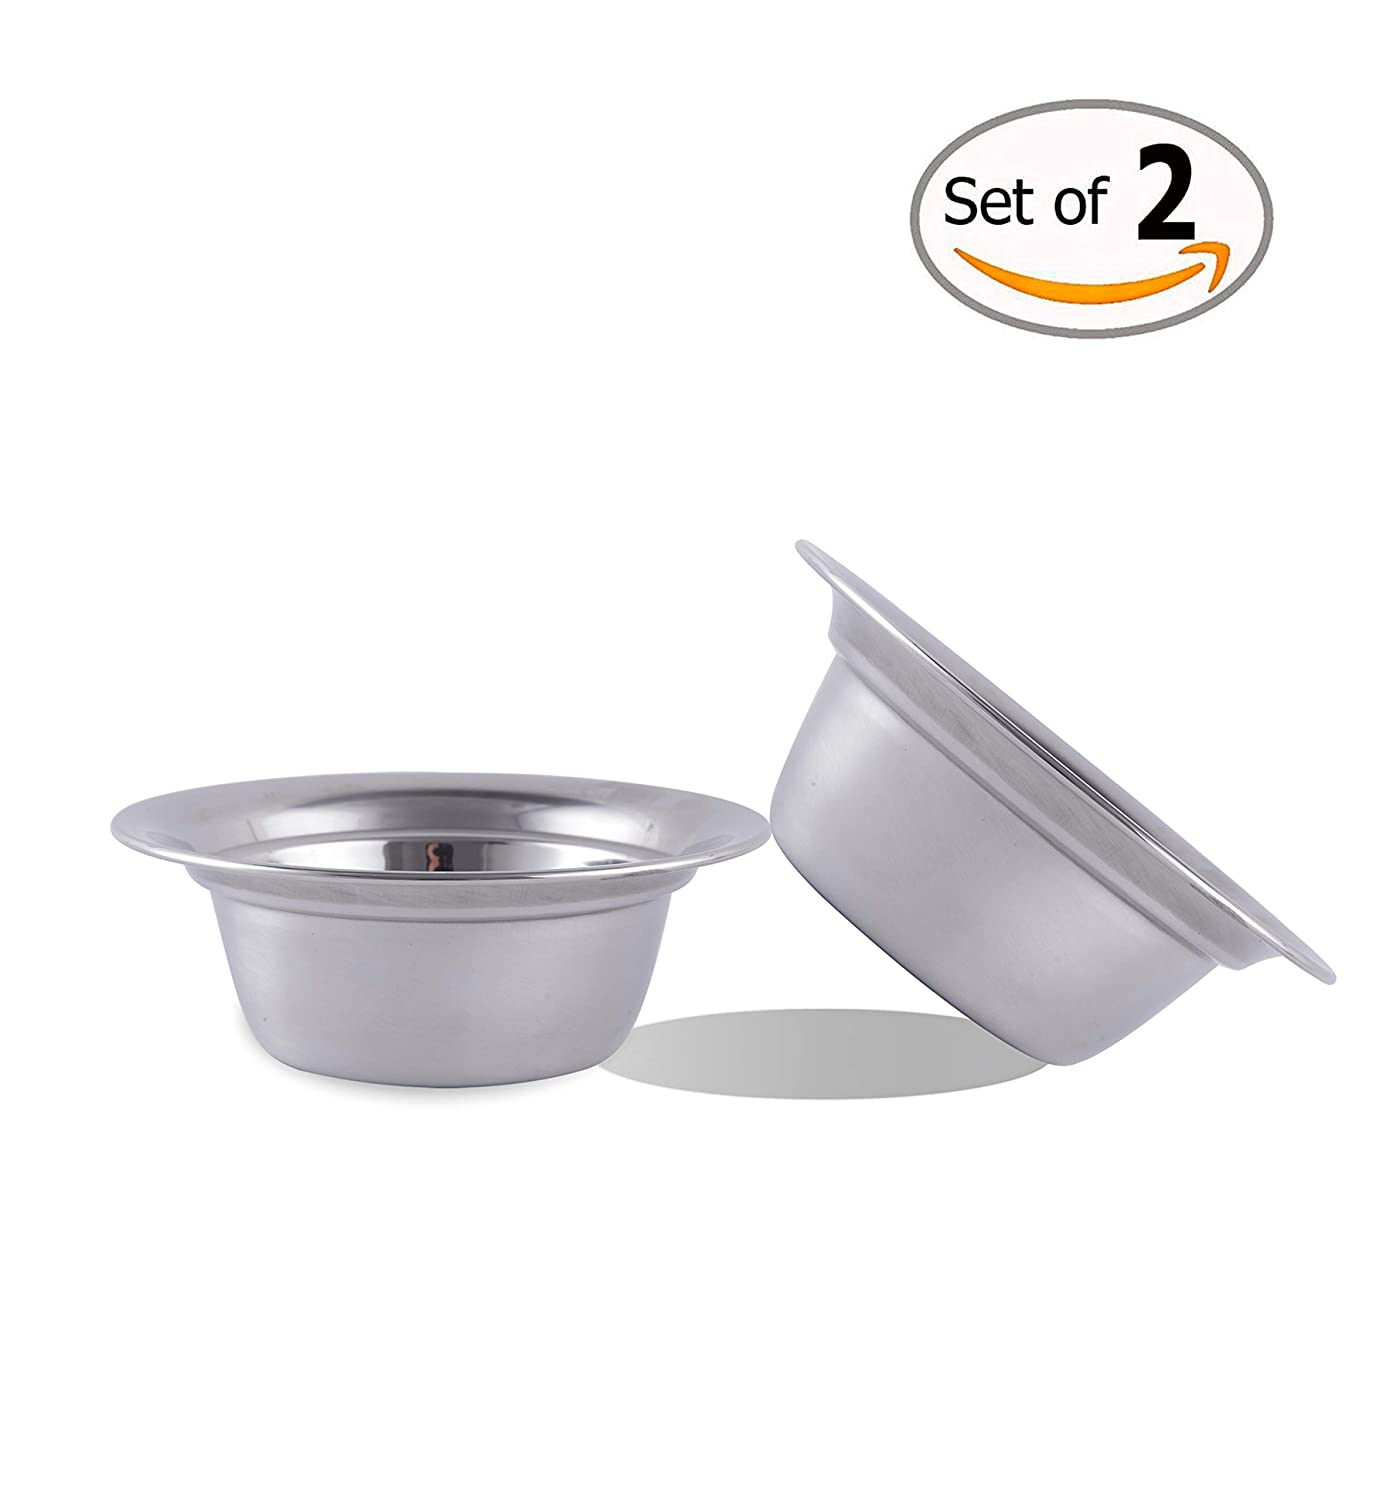 9.4 Inch Global Wansheng 9.4 Inch Pet Bowls, Watering Bowls, Stainless Steel Cat Food Dishes, 2-Pack Dog Food Bowls